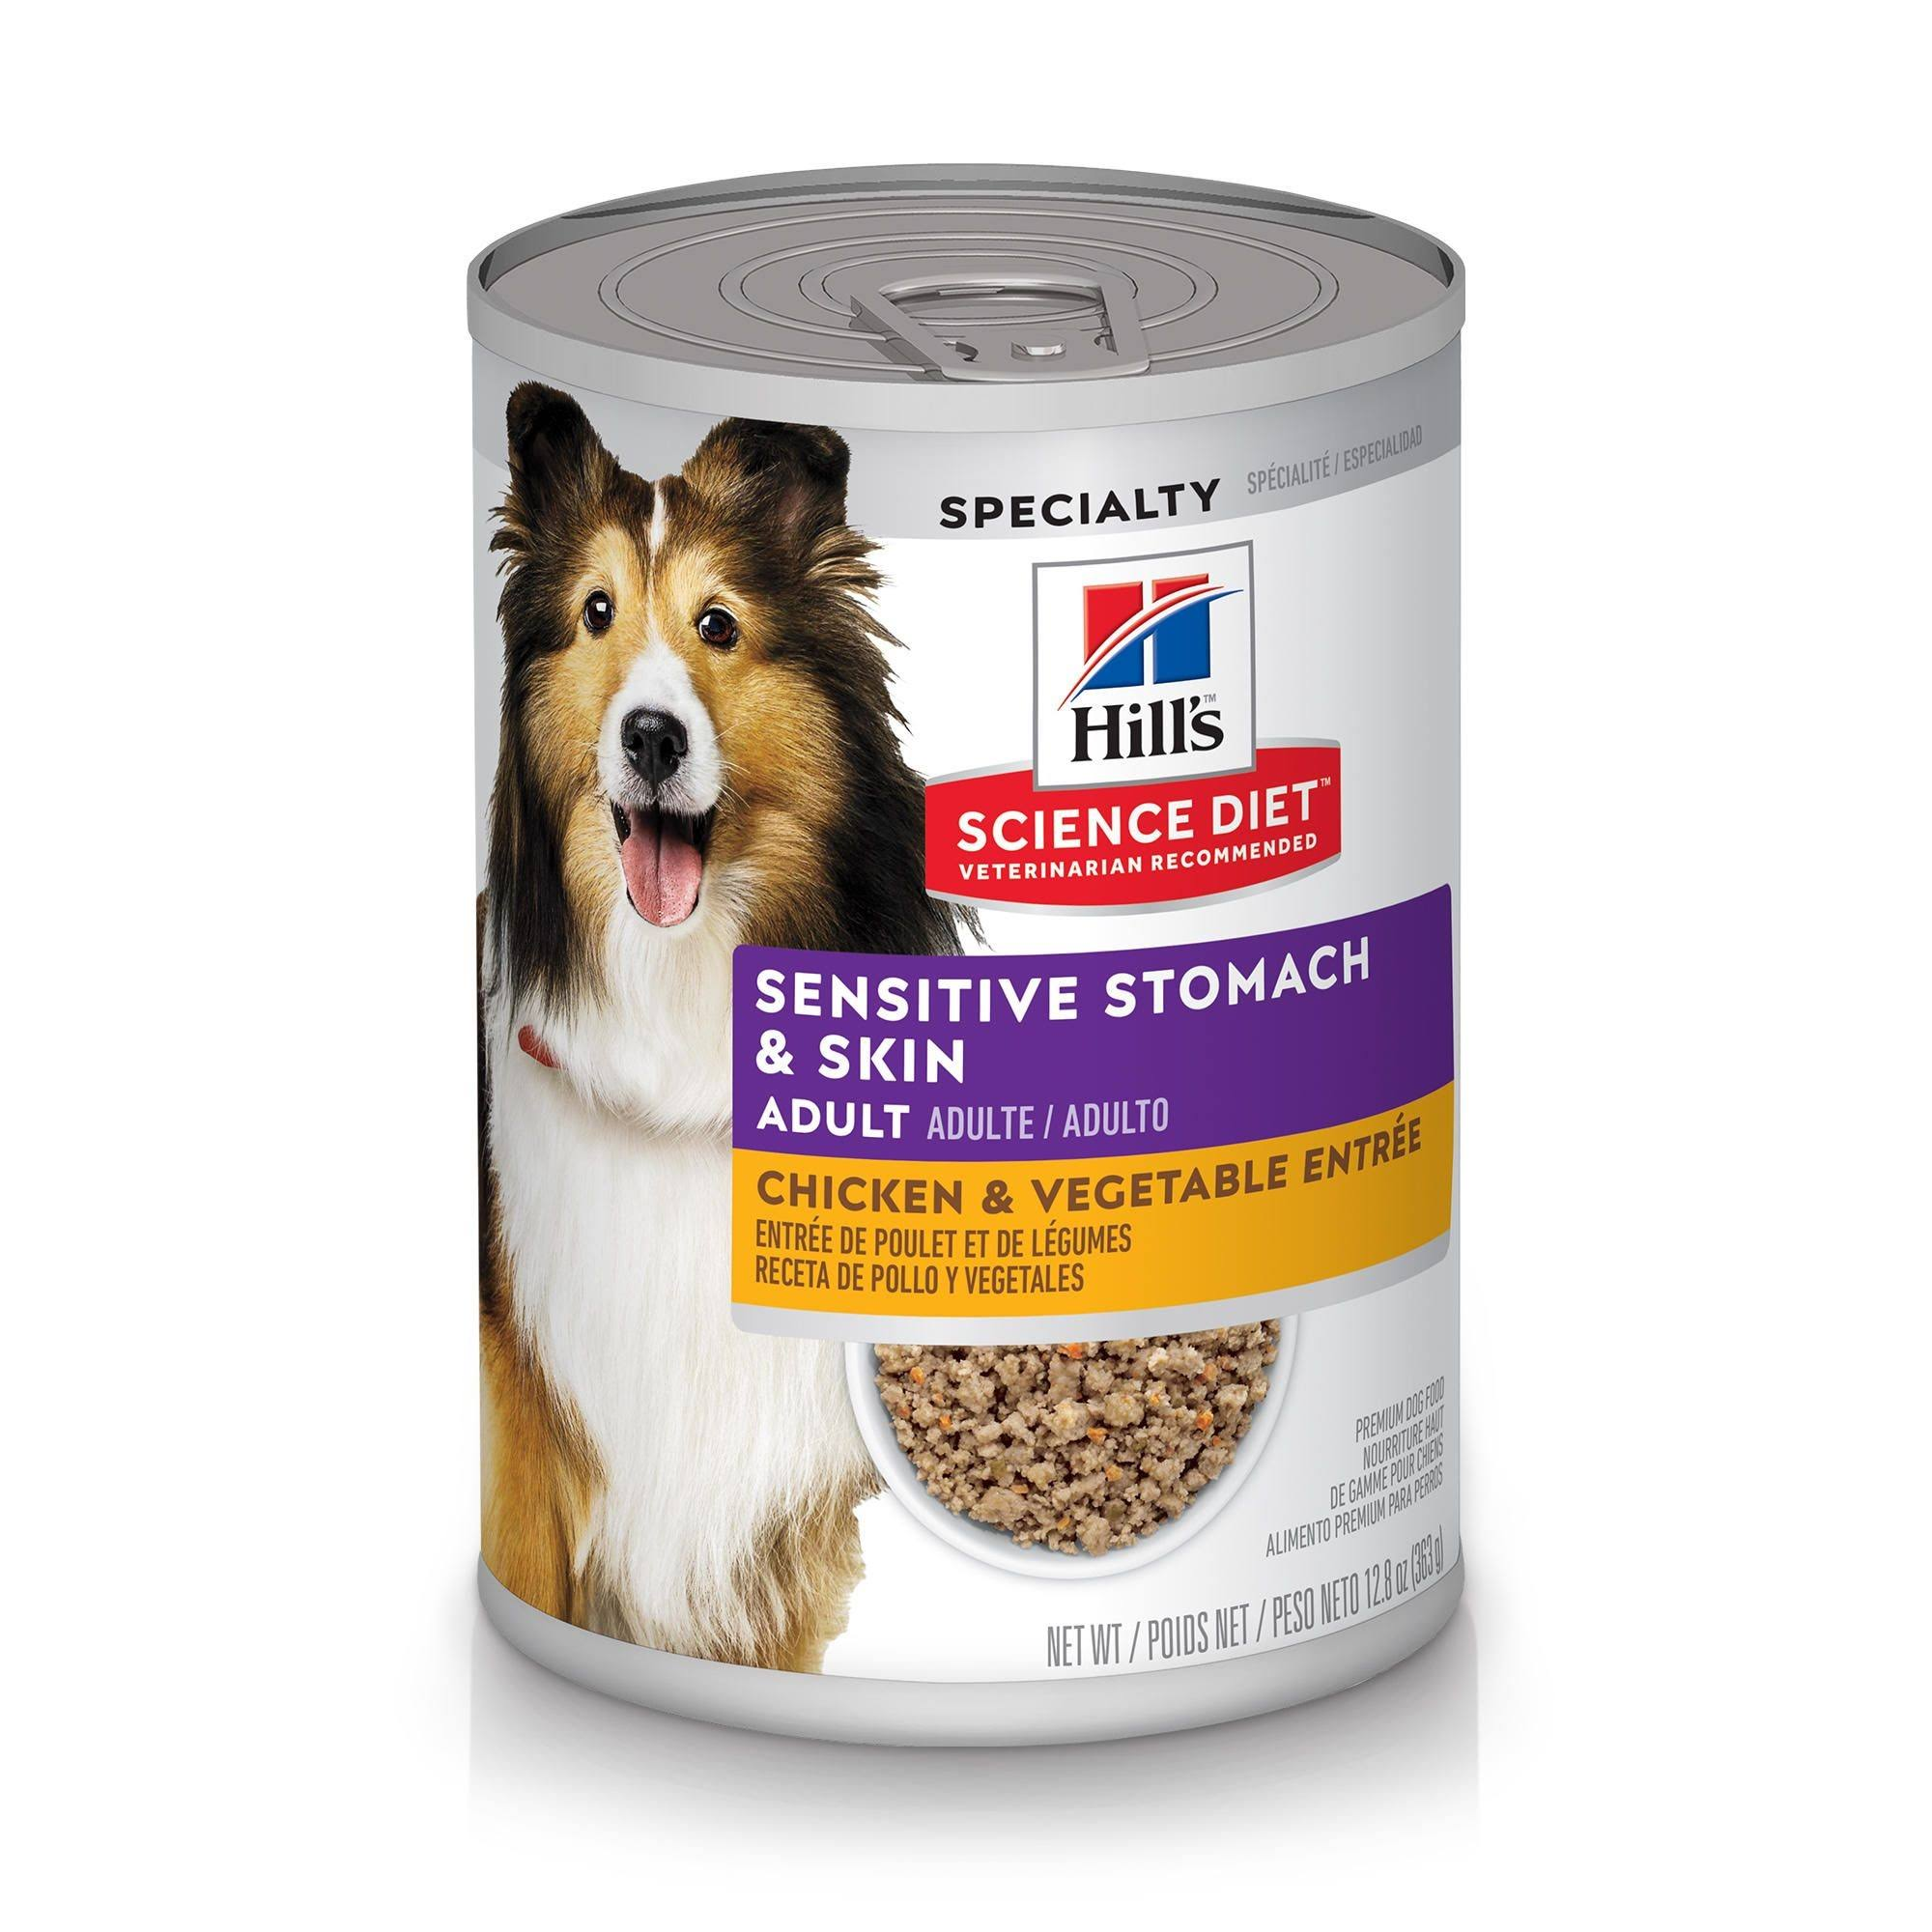 Science Diet Adult Sensitive Stomach & Skin Chicken & Vegetable Entree Wet Dog Food